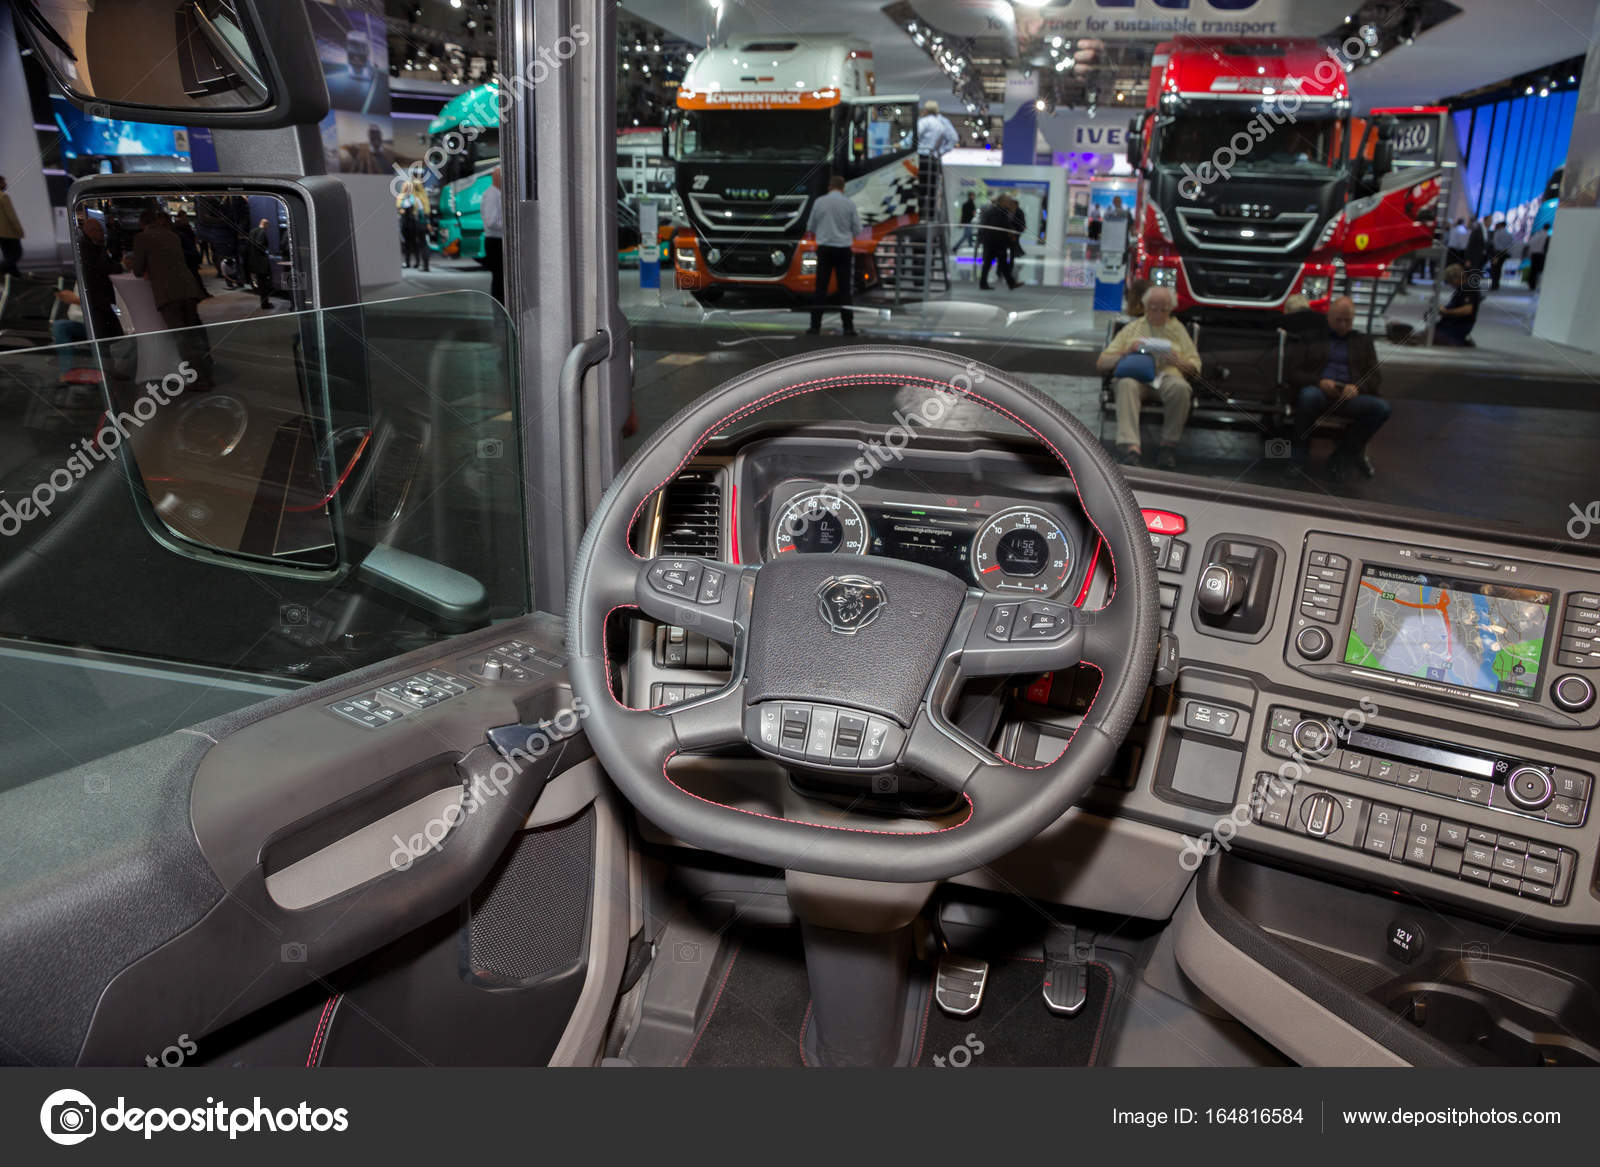 New scania truck interior | Scania truck interior – Stock